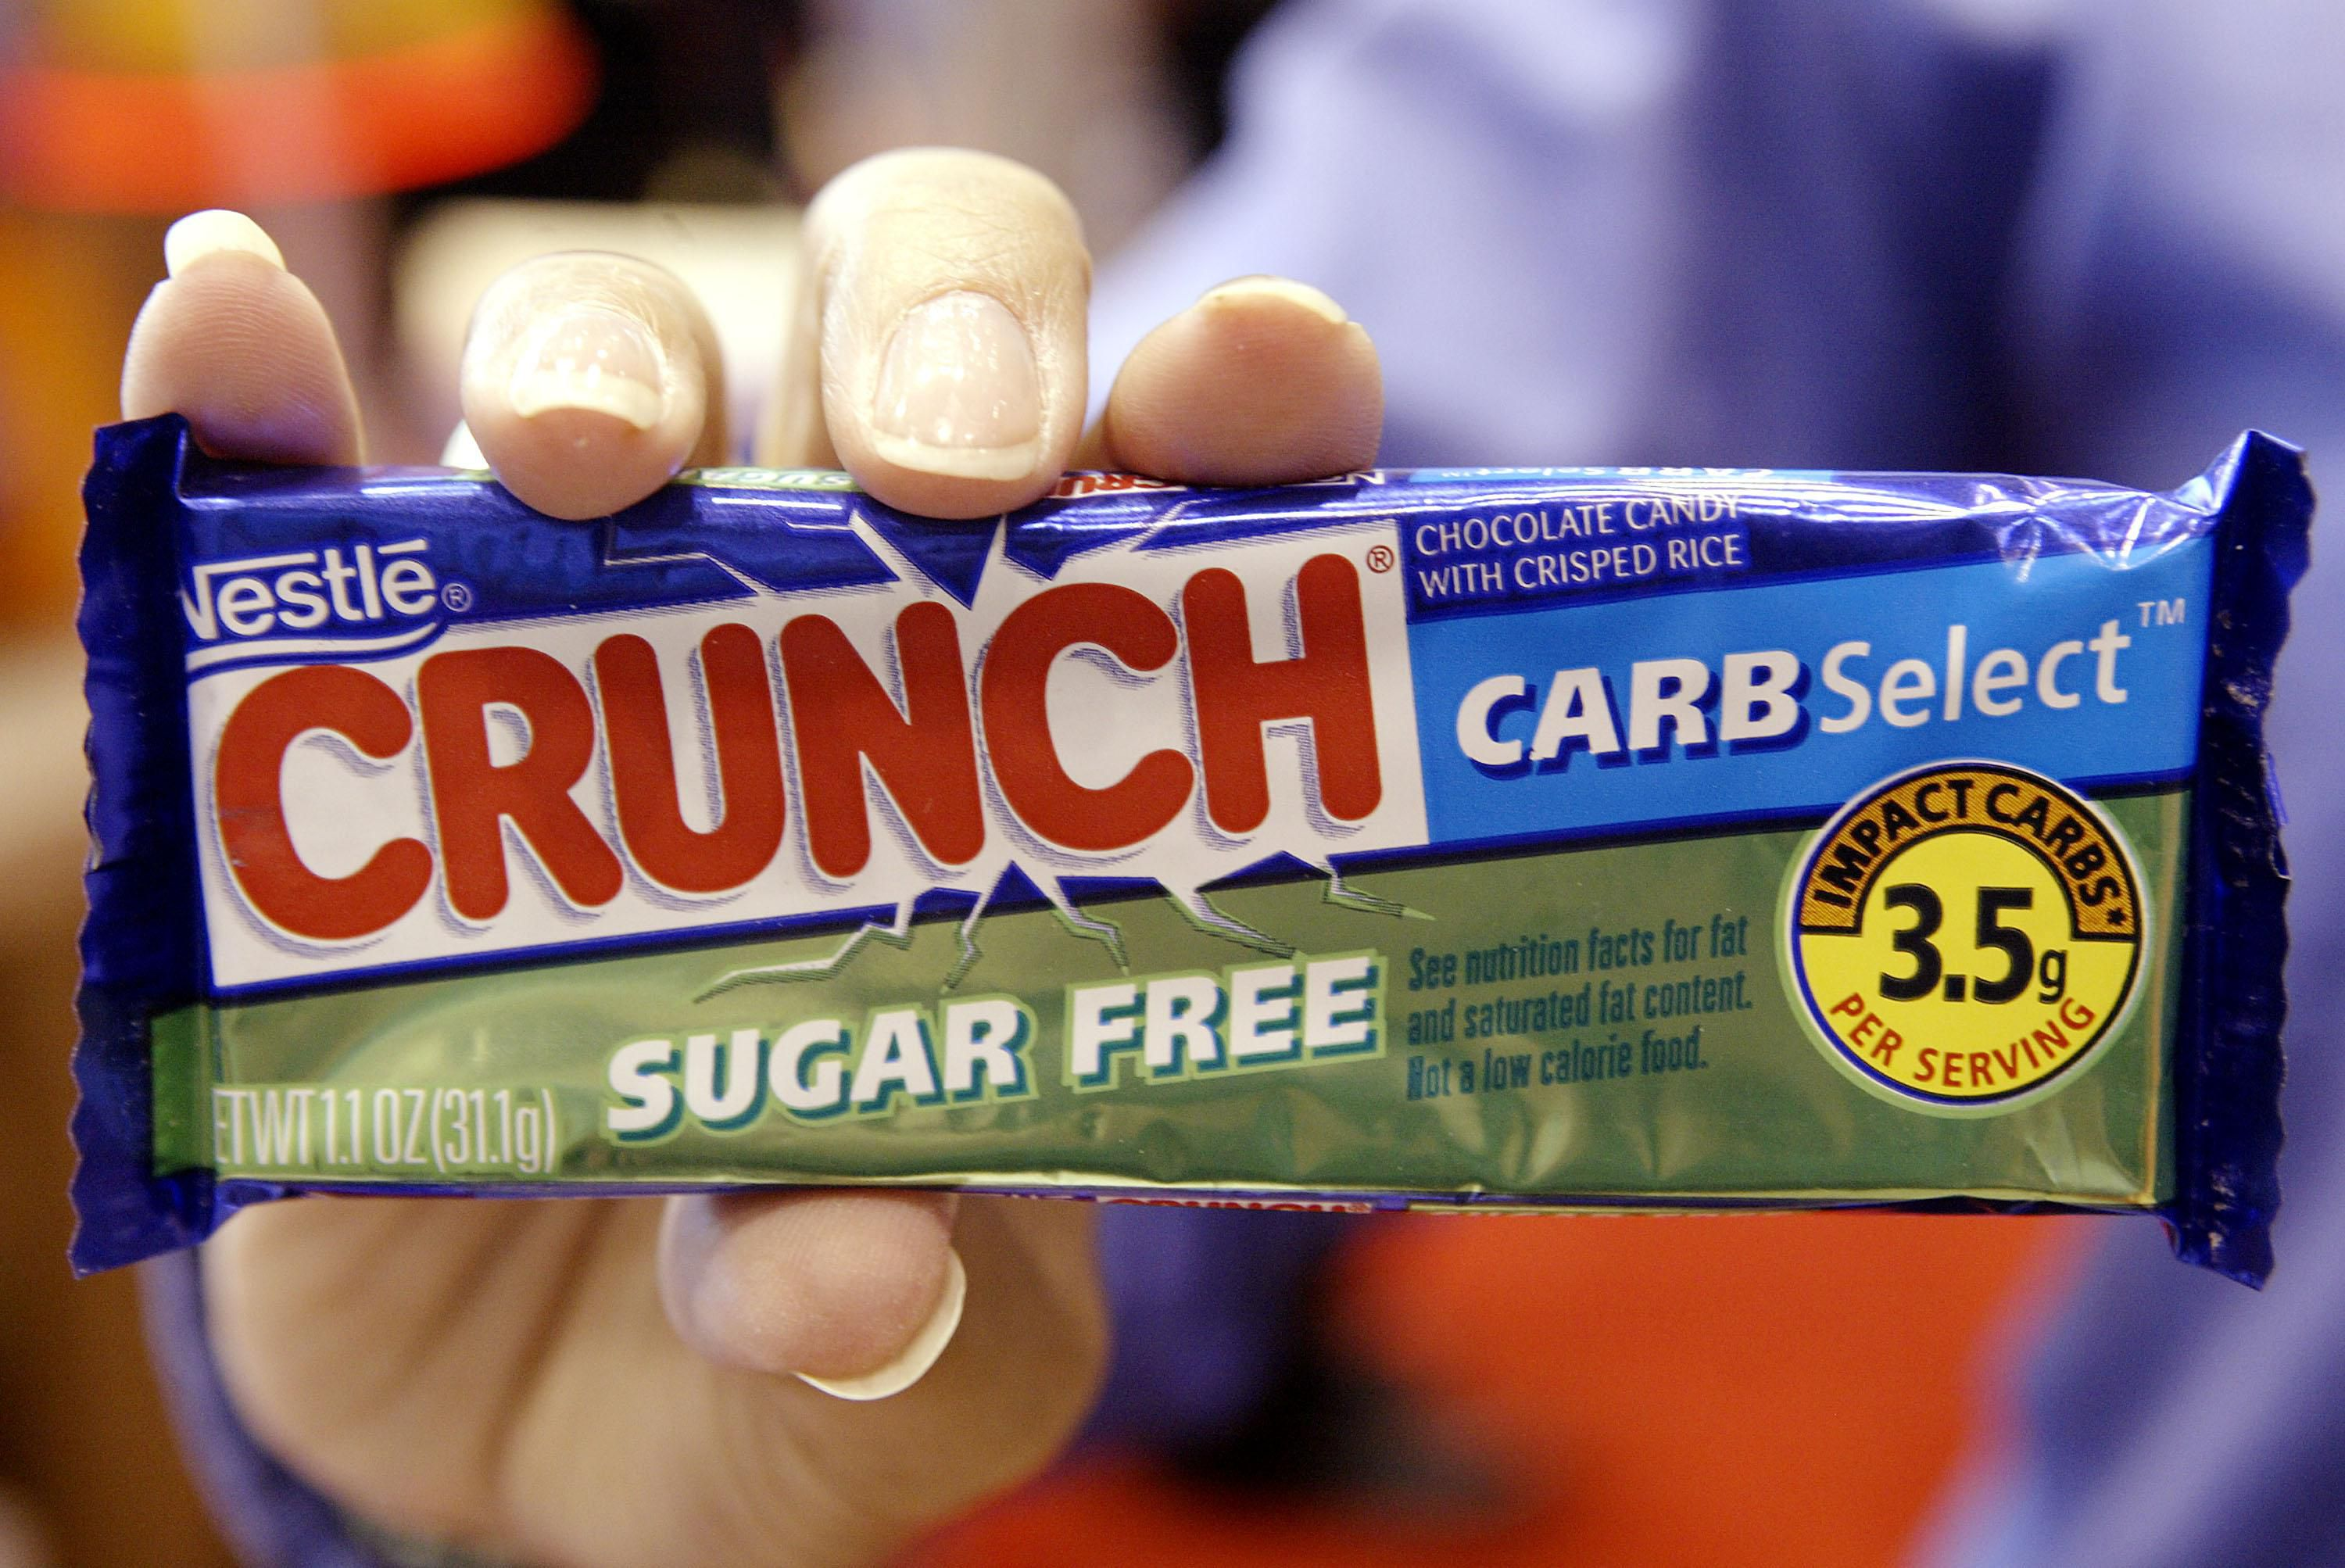 The Truth Behind Sugar Free Products